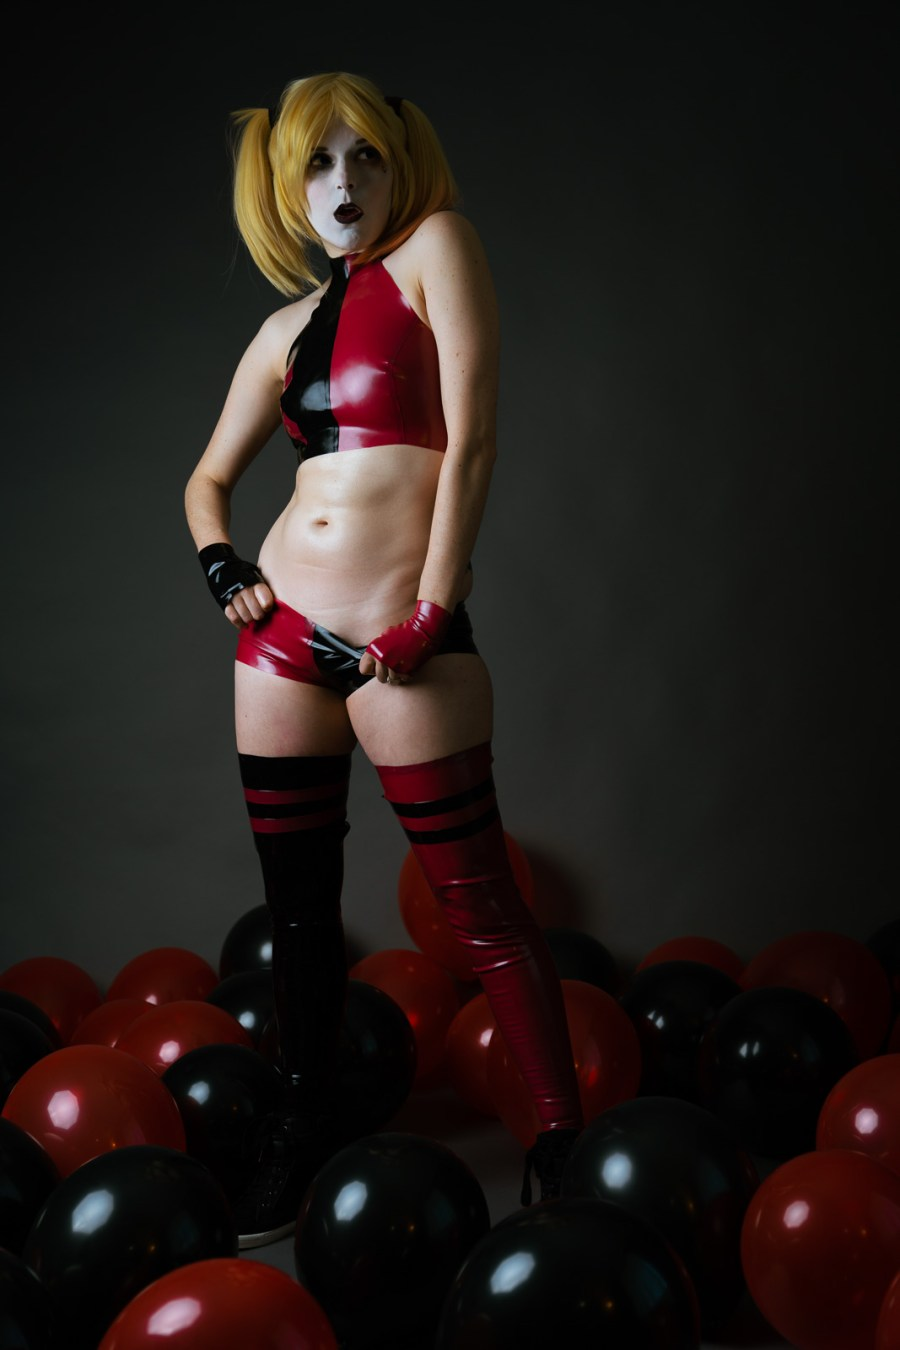 Lossien as Harley in red and black latex cropped shirt, small pants, and thigh high leggings. She is resting her hands on the waistband of her shorts, pulling them down playfully, while standing in a bunch of black and red balloons.